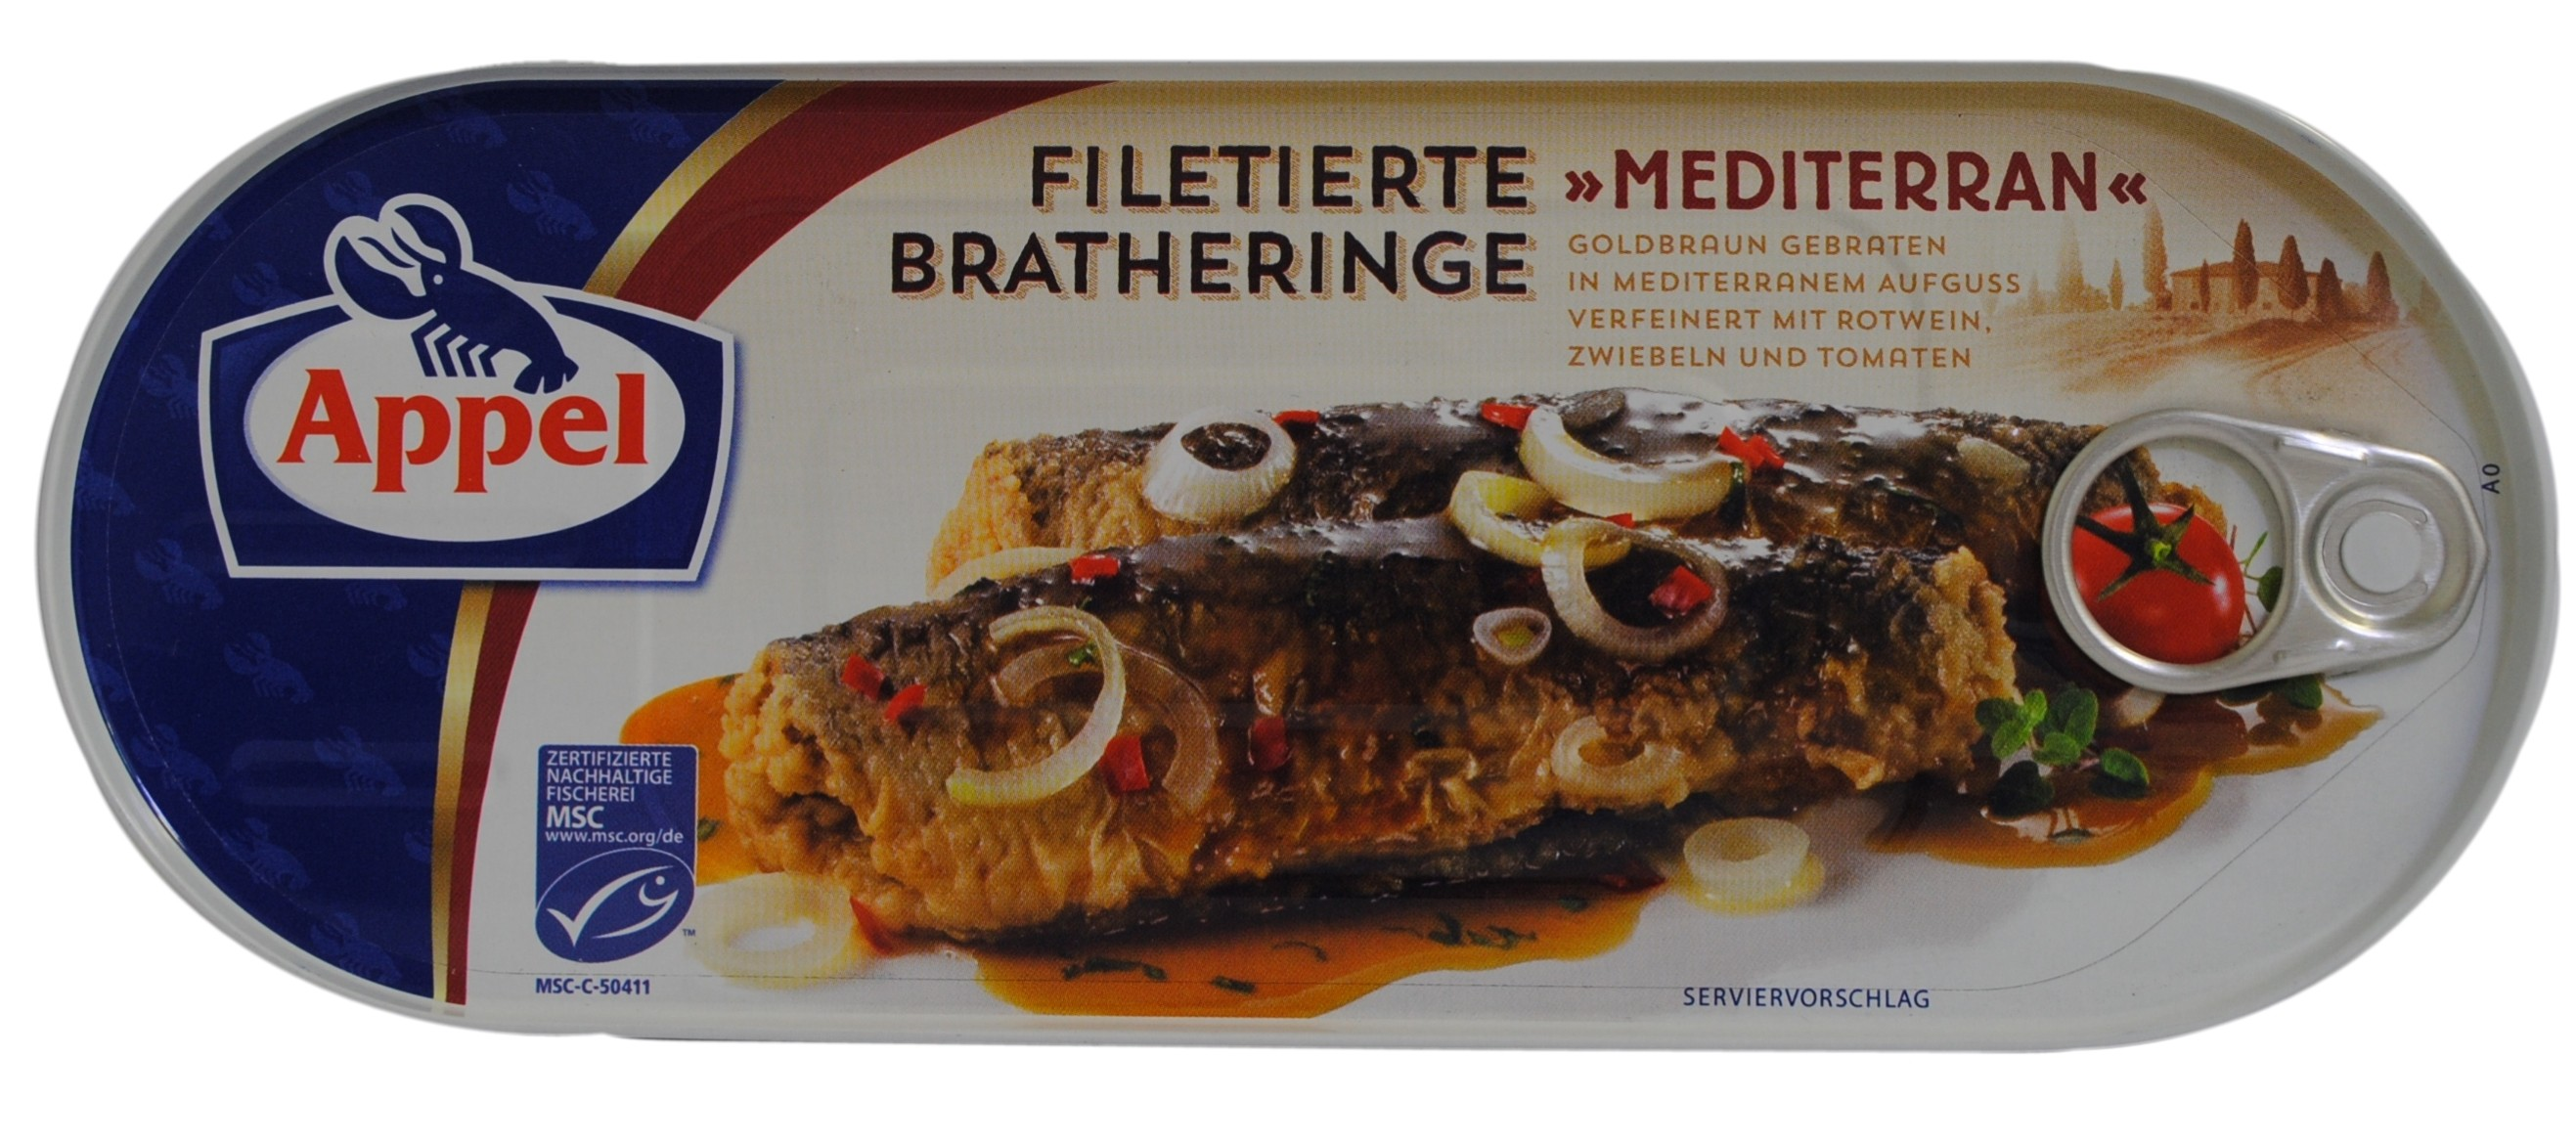 Mediterranean-Style Fried Herring Fillets